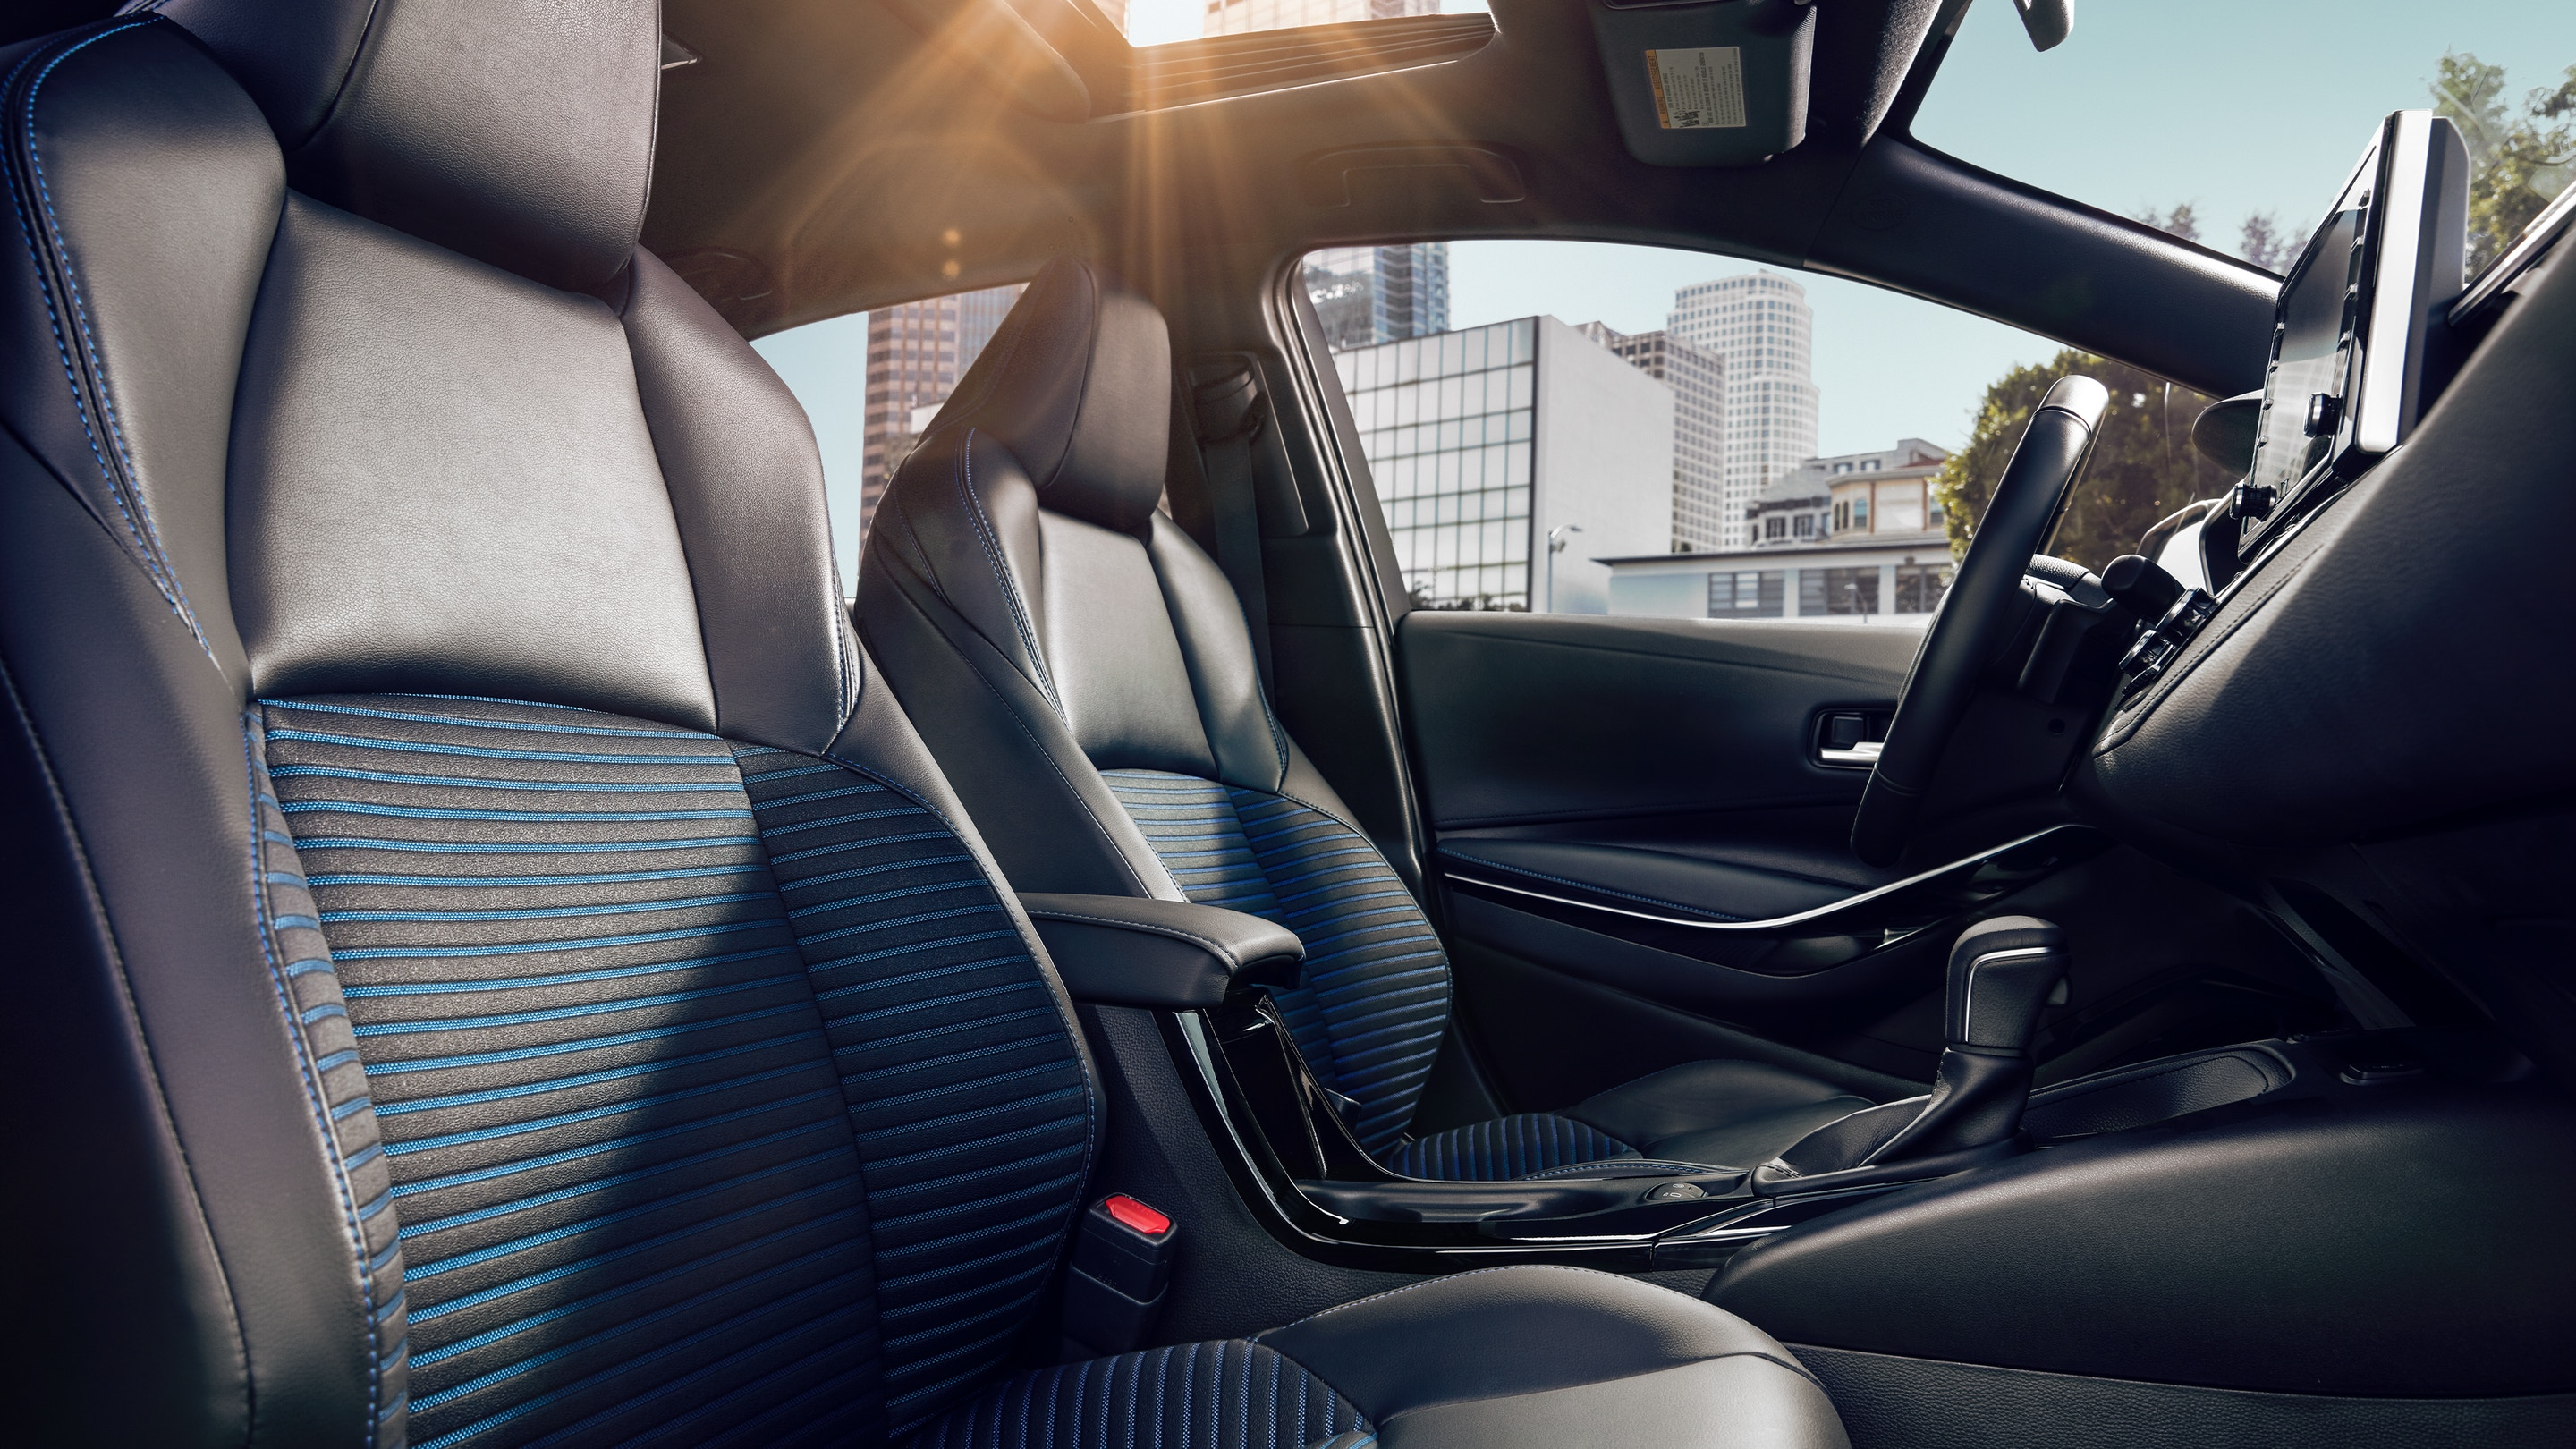 The Sporty Interior of the 2020 Corolla